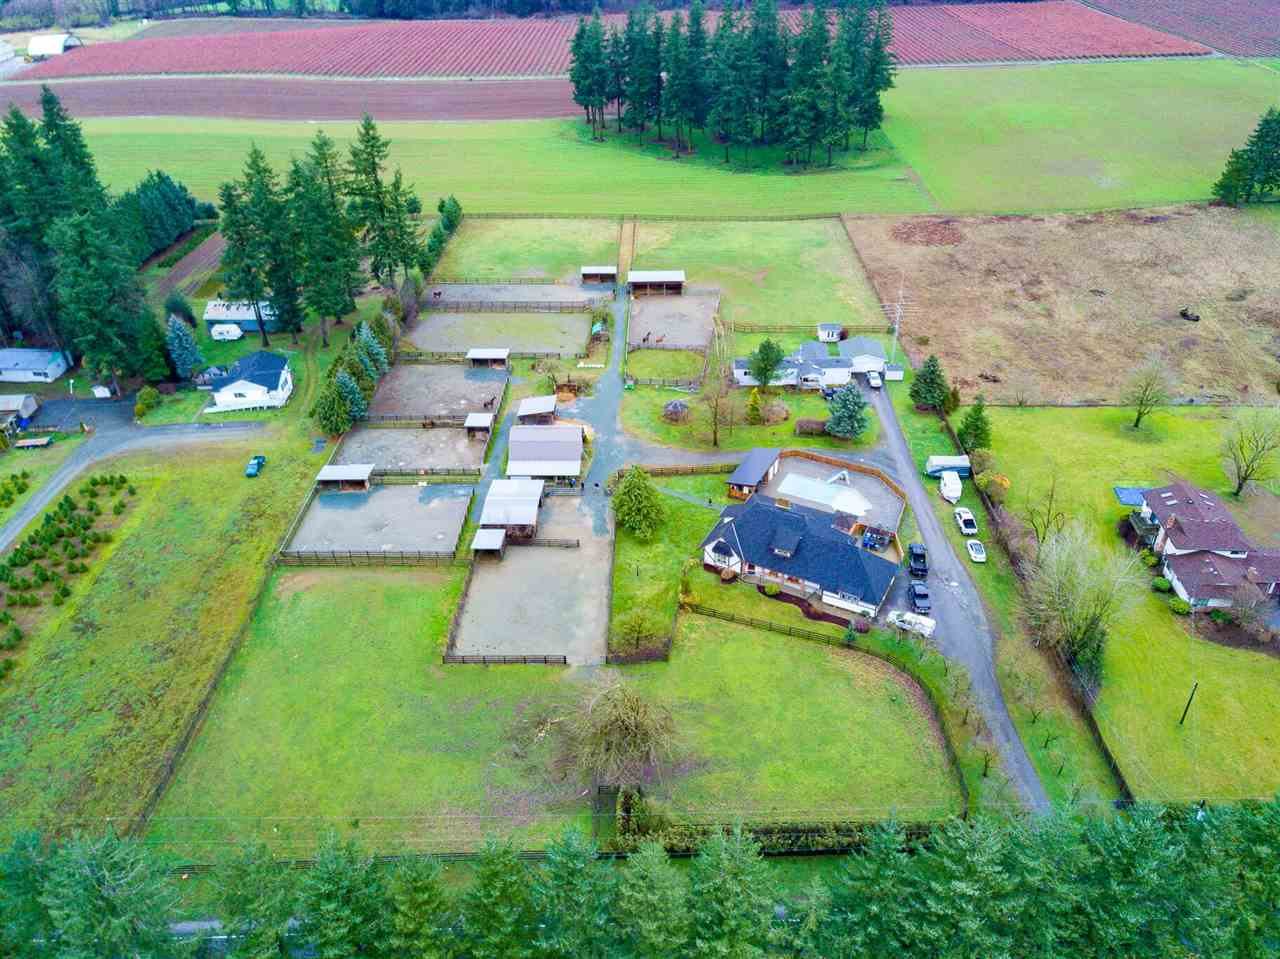 2 FAMILY HOMES EQUESTRIAN SET UP-5 ACRES IN SOUTH LANGLEY WITH MOUNTIAN VIEW-MAIN HOME is 2 storey Tudor style with bsmt over 3100SF, 4 bdrm with many upgrades including kitchen, roof, hot water tank, appliances and paint.Inground pool with new paved decking, 2 fire pits, covered BBQ area with seating and new cedar fence.2 BDRM MOBILE with an addition, garage and private yard.Exceptional horse set up with two barns,6 sand paddocks with shelters and water, 3 grass fields and riding ring. Well established gardens and trees for shade and beauty make this a page out of a country lifestyle magazine you would be proud to call home.The whole property is well drained and gravel walkways and driveways maintained for clean country living.